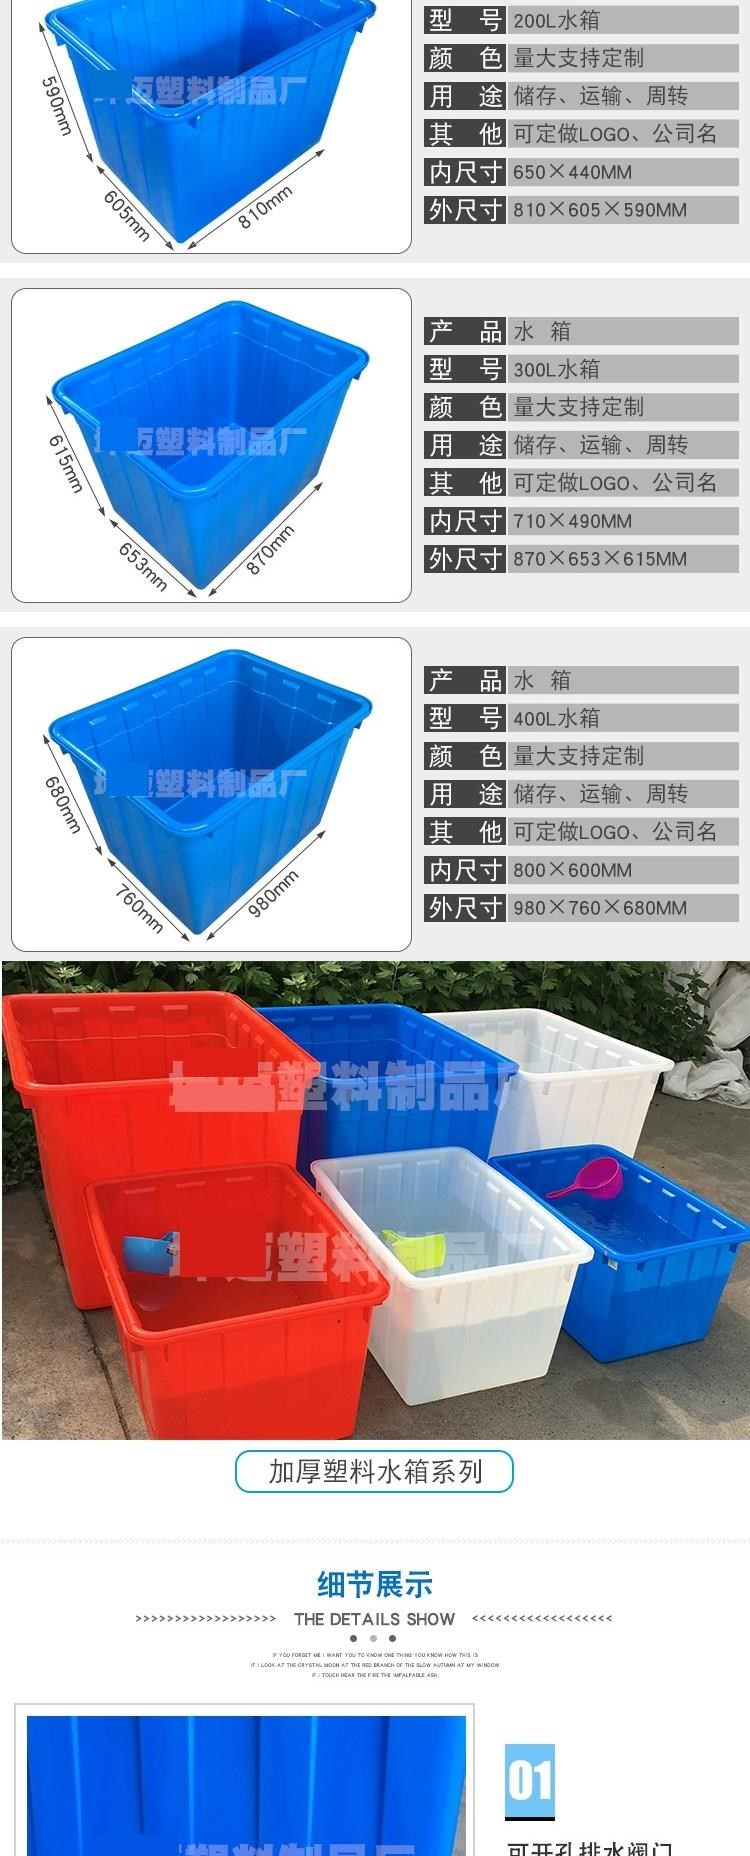 Shangxin chemical water storage bucket hamster scorpion apartment turnover box uncovered large capacity plastic water tank square plastic simplicity